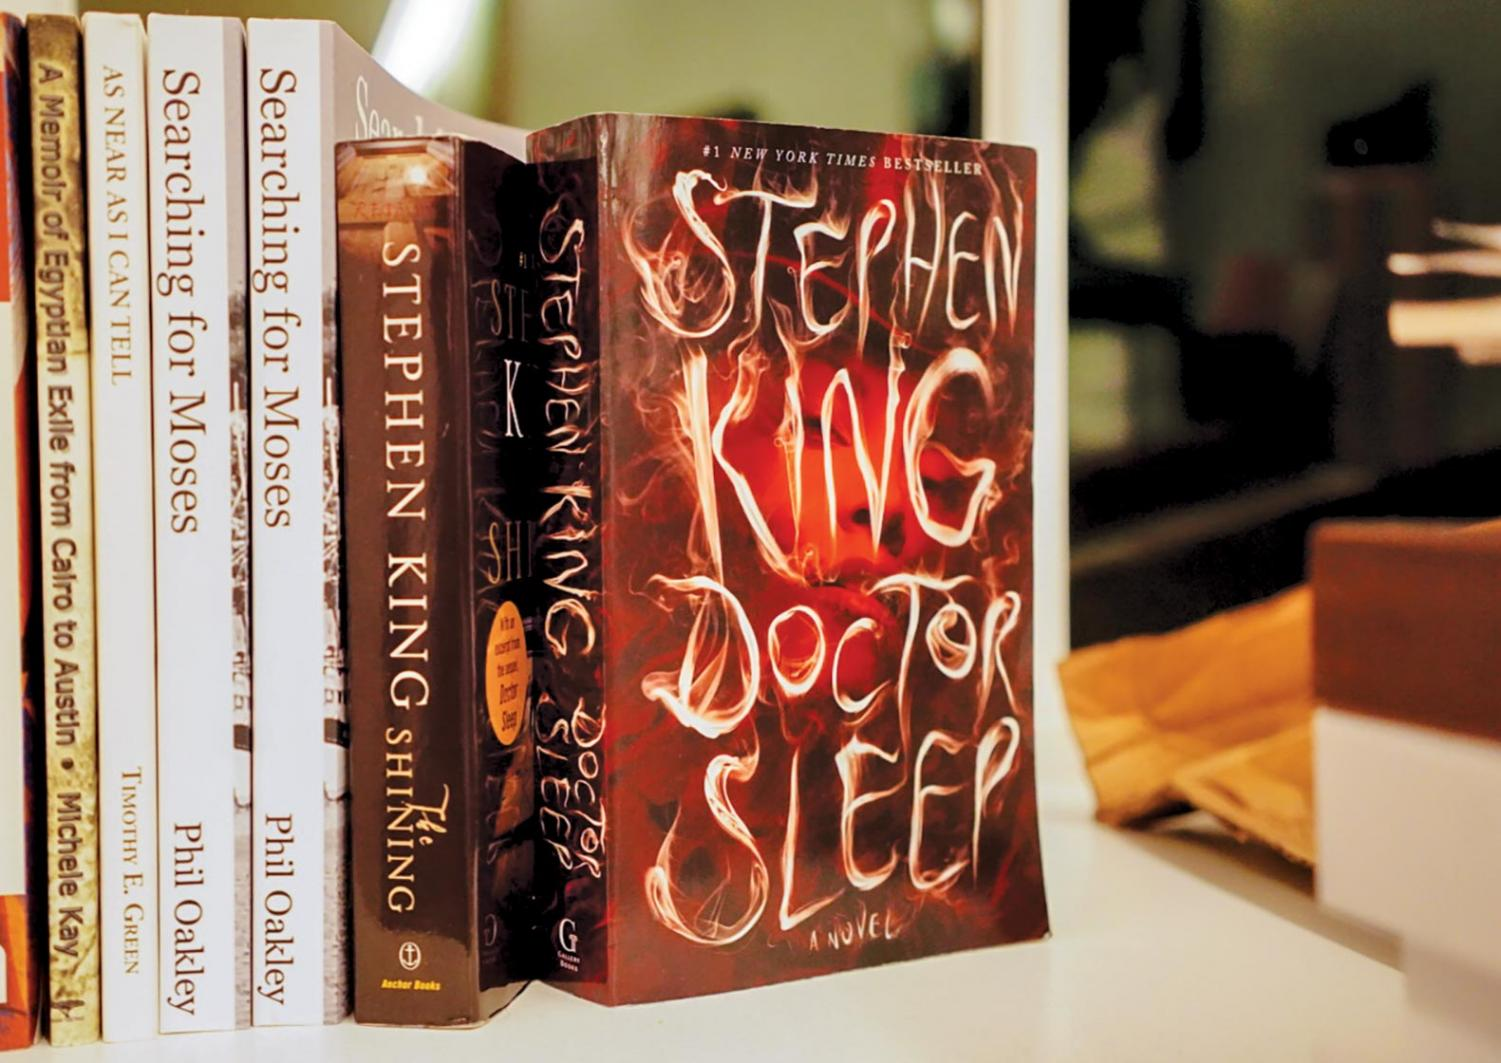 'Doctor Sleep' has a 74% Rotten Tomoatoes score, while both Stephen King books earned a four out of five on Goodreads. While considered a classic, 'The Shining' was not well recieved upon release.